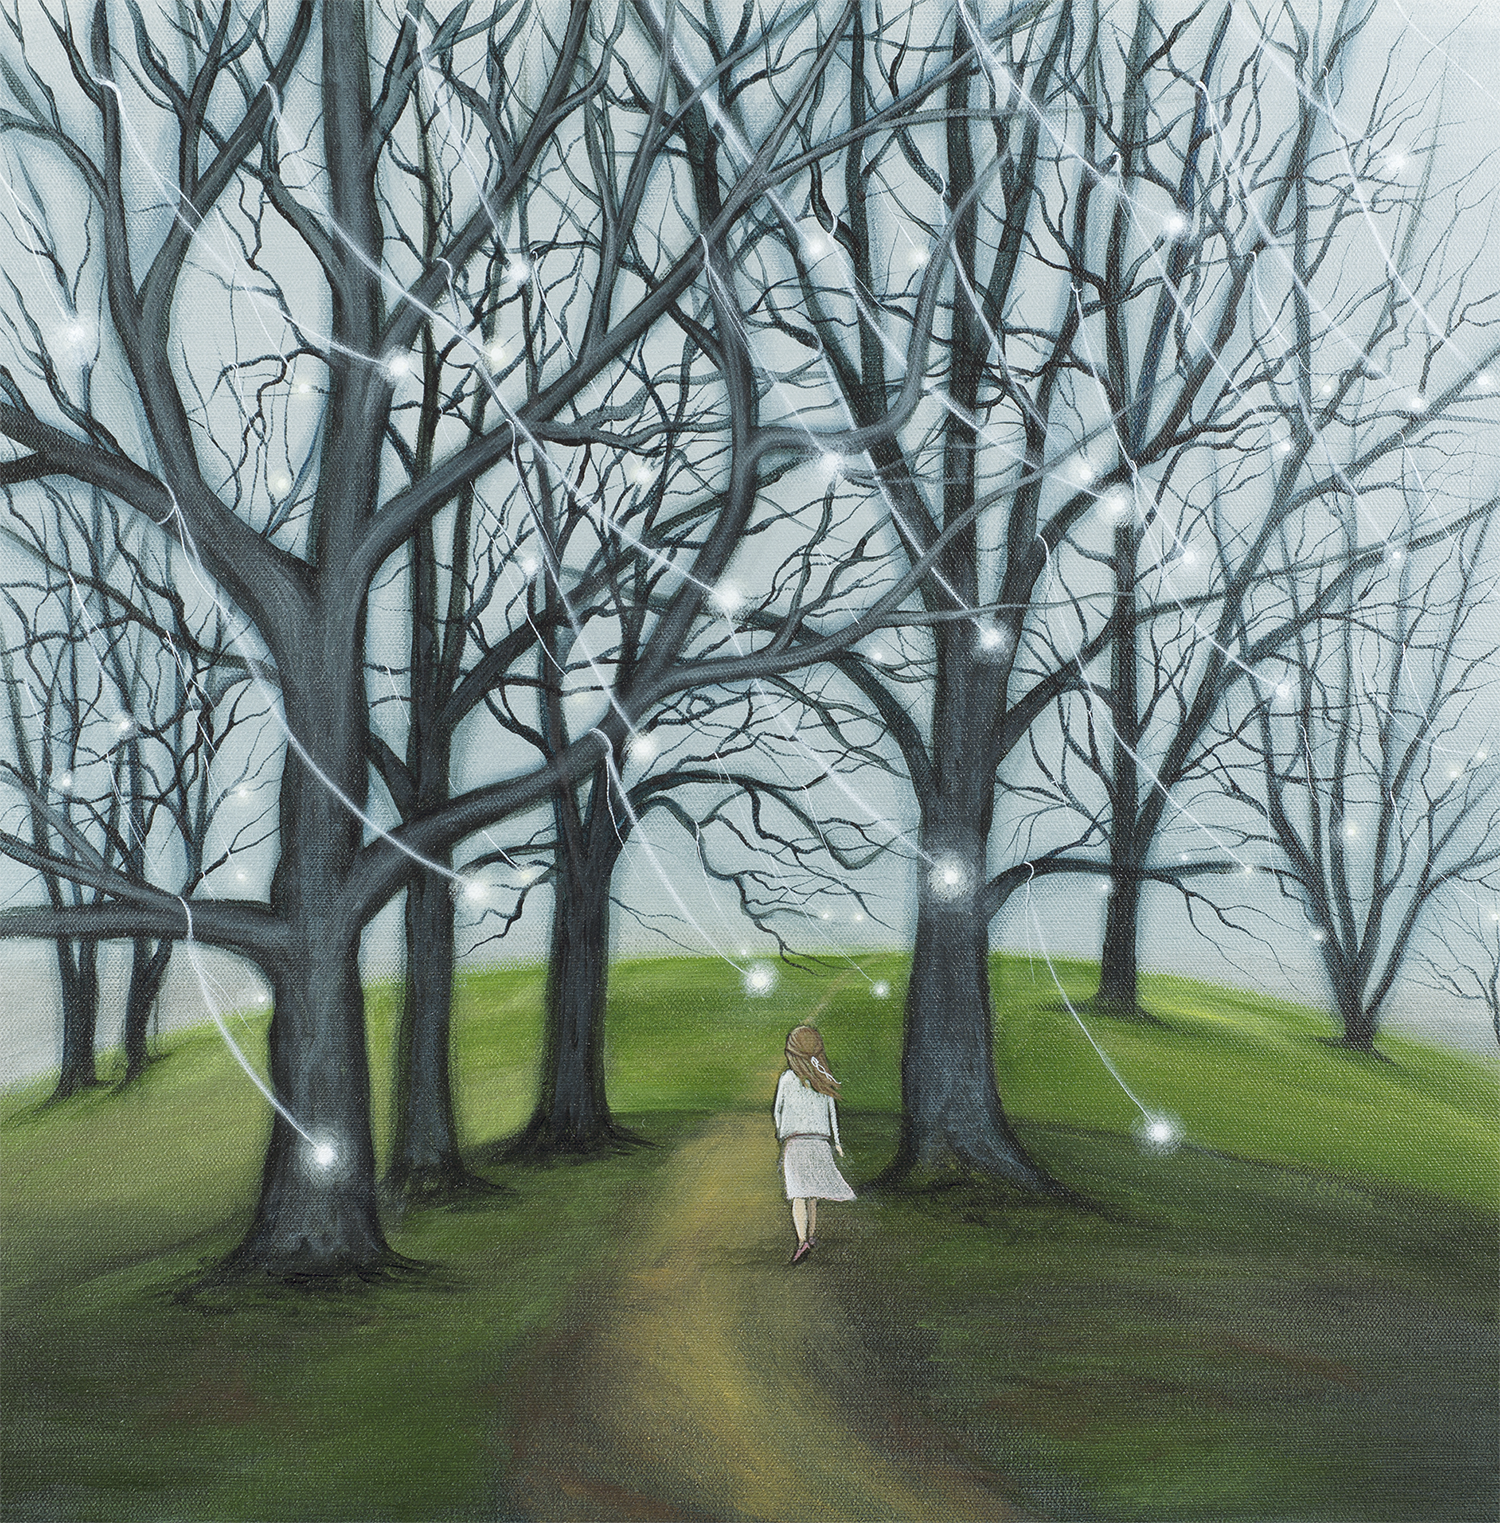 UNDER THE SLEEPING TREES 20X20 Acrylic on Gallery Canvas SOLD  The girl in this painting is a believer. She believes that Spring is coming—that the trees are not dead but only sleeping. And so she walks, sometimes boldly and other times timidly, always in the light of the promise of Spring.